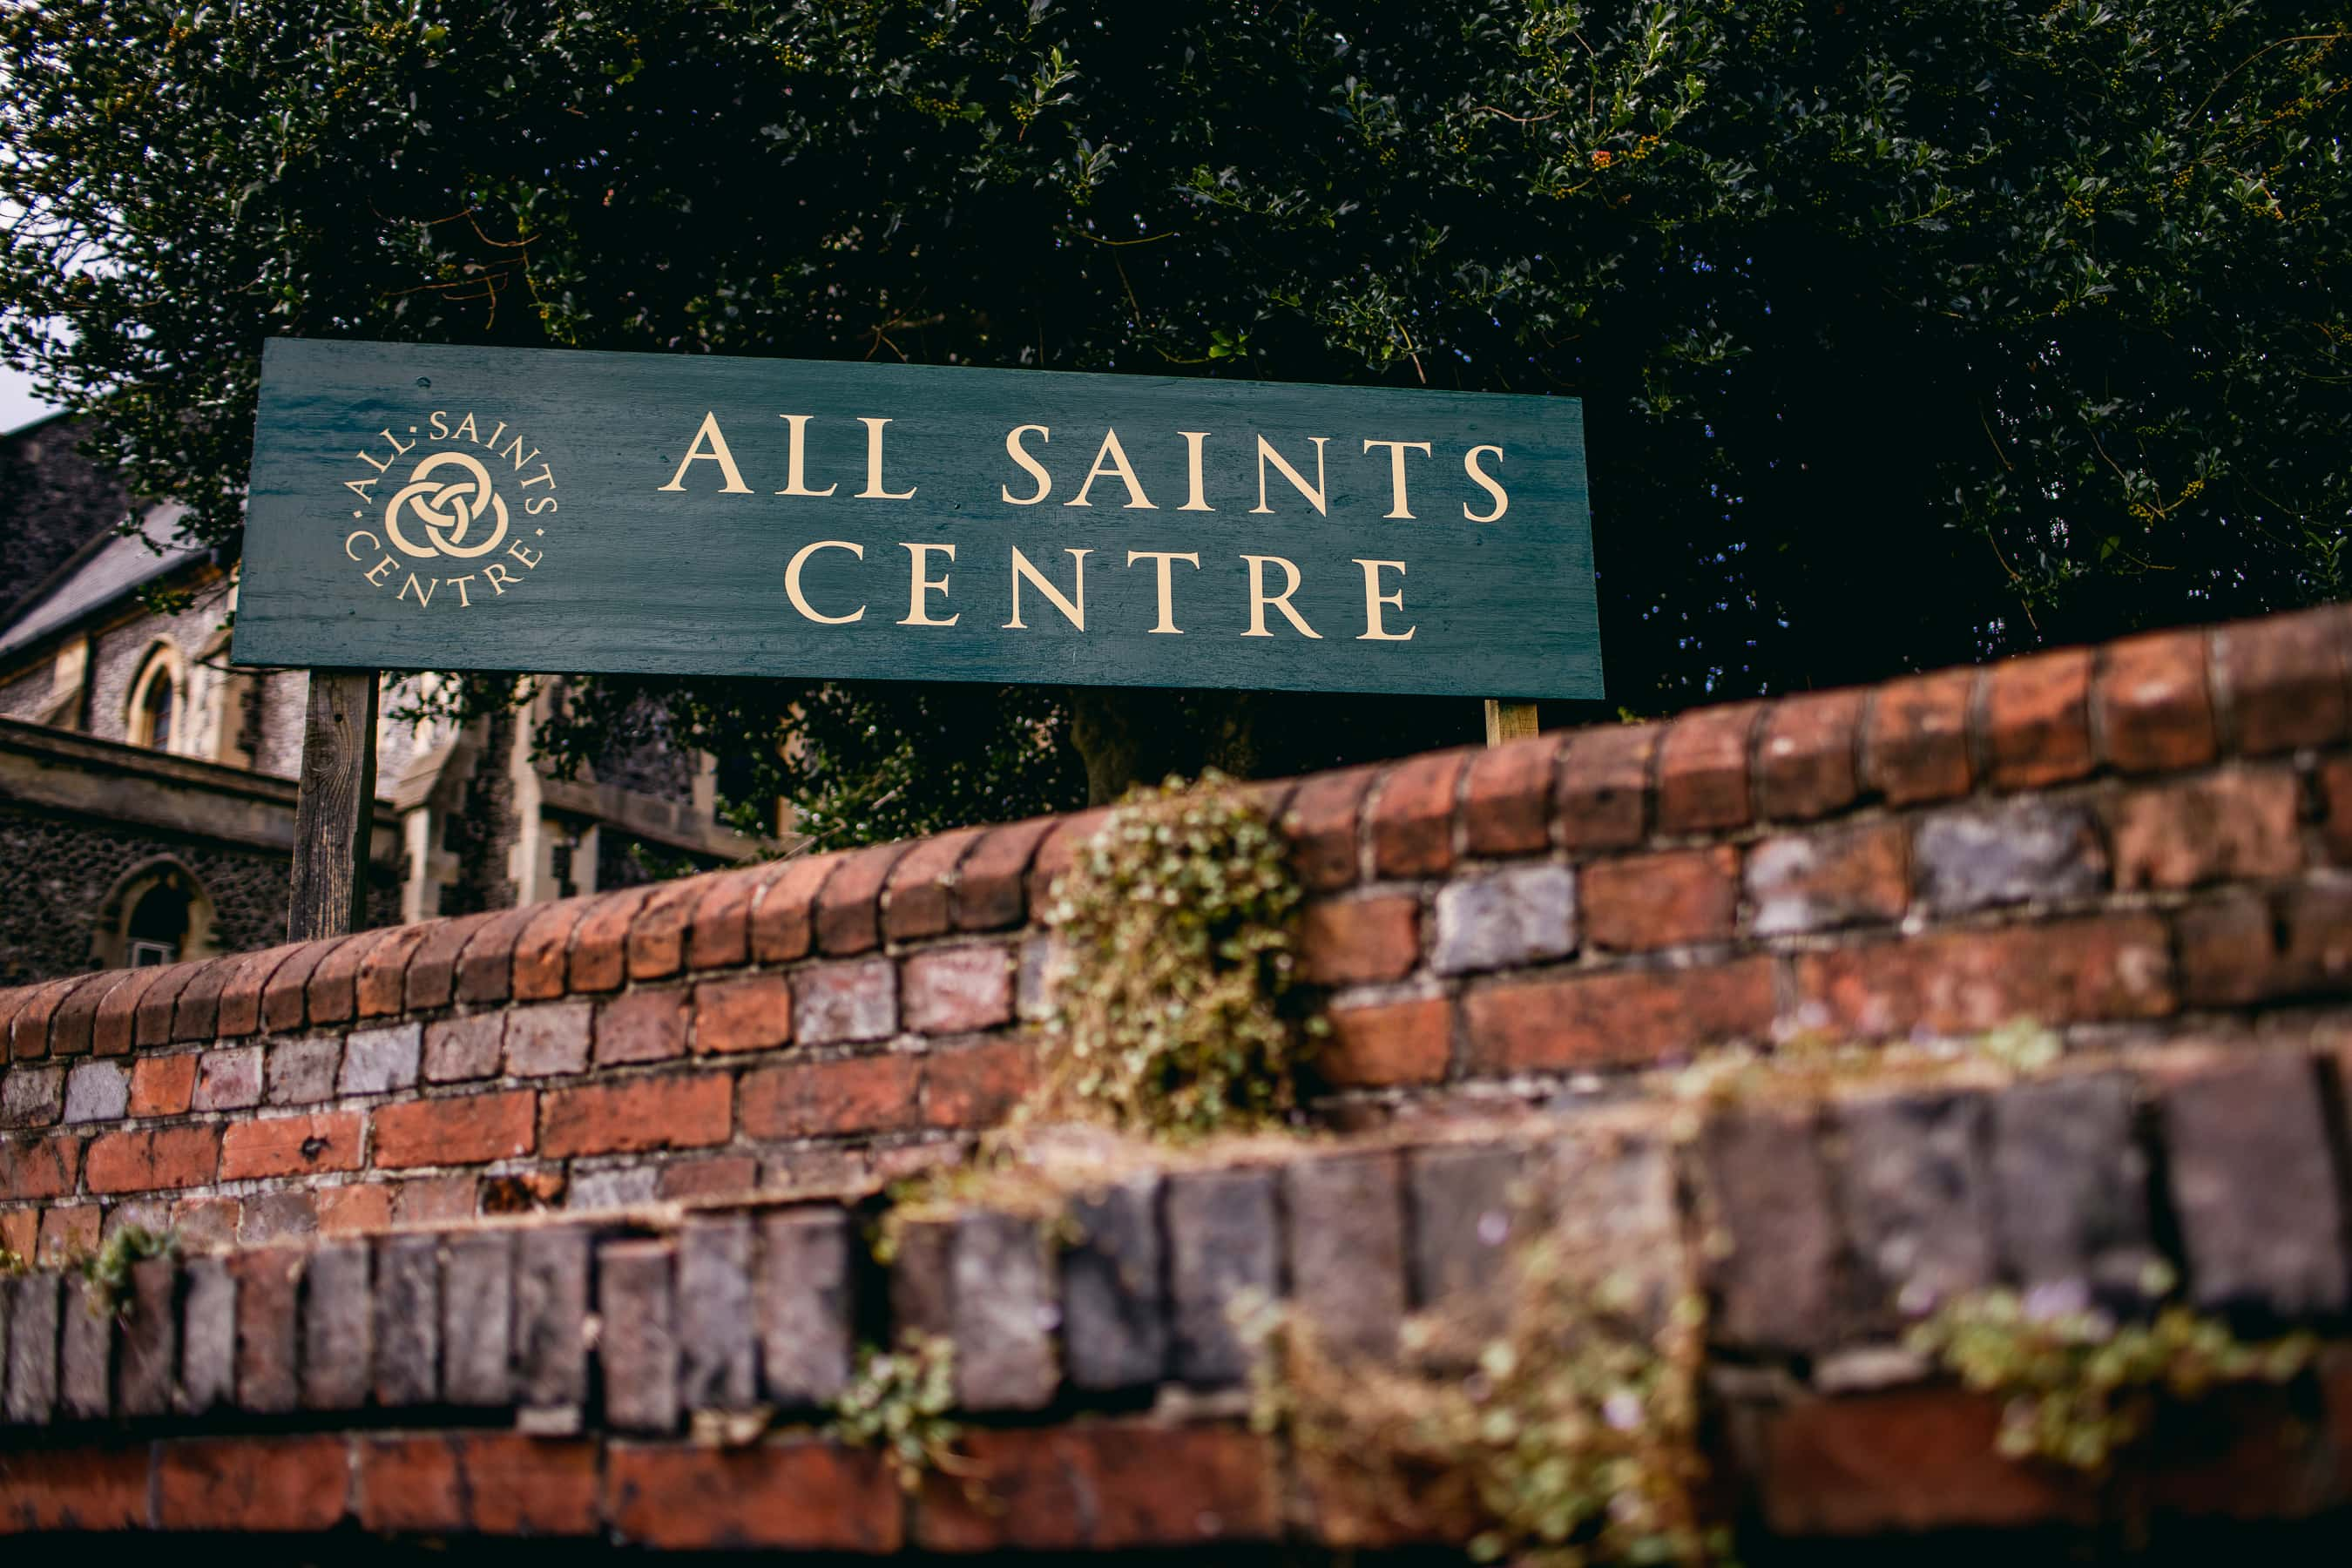 The All Saints Centre in Lewes